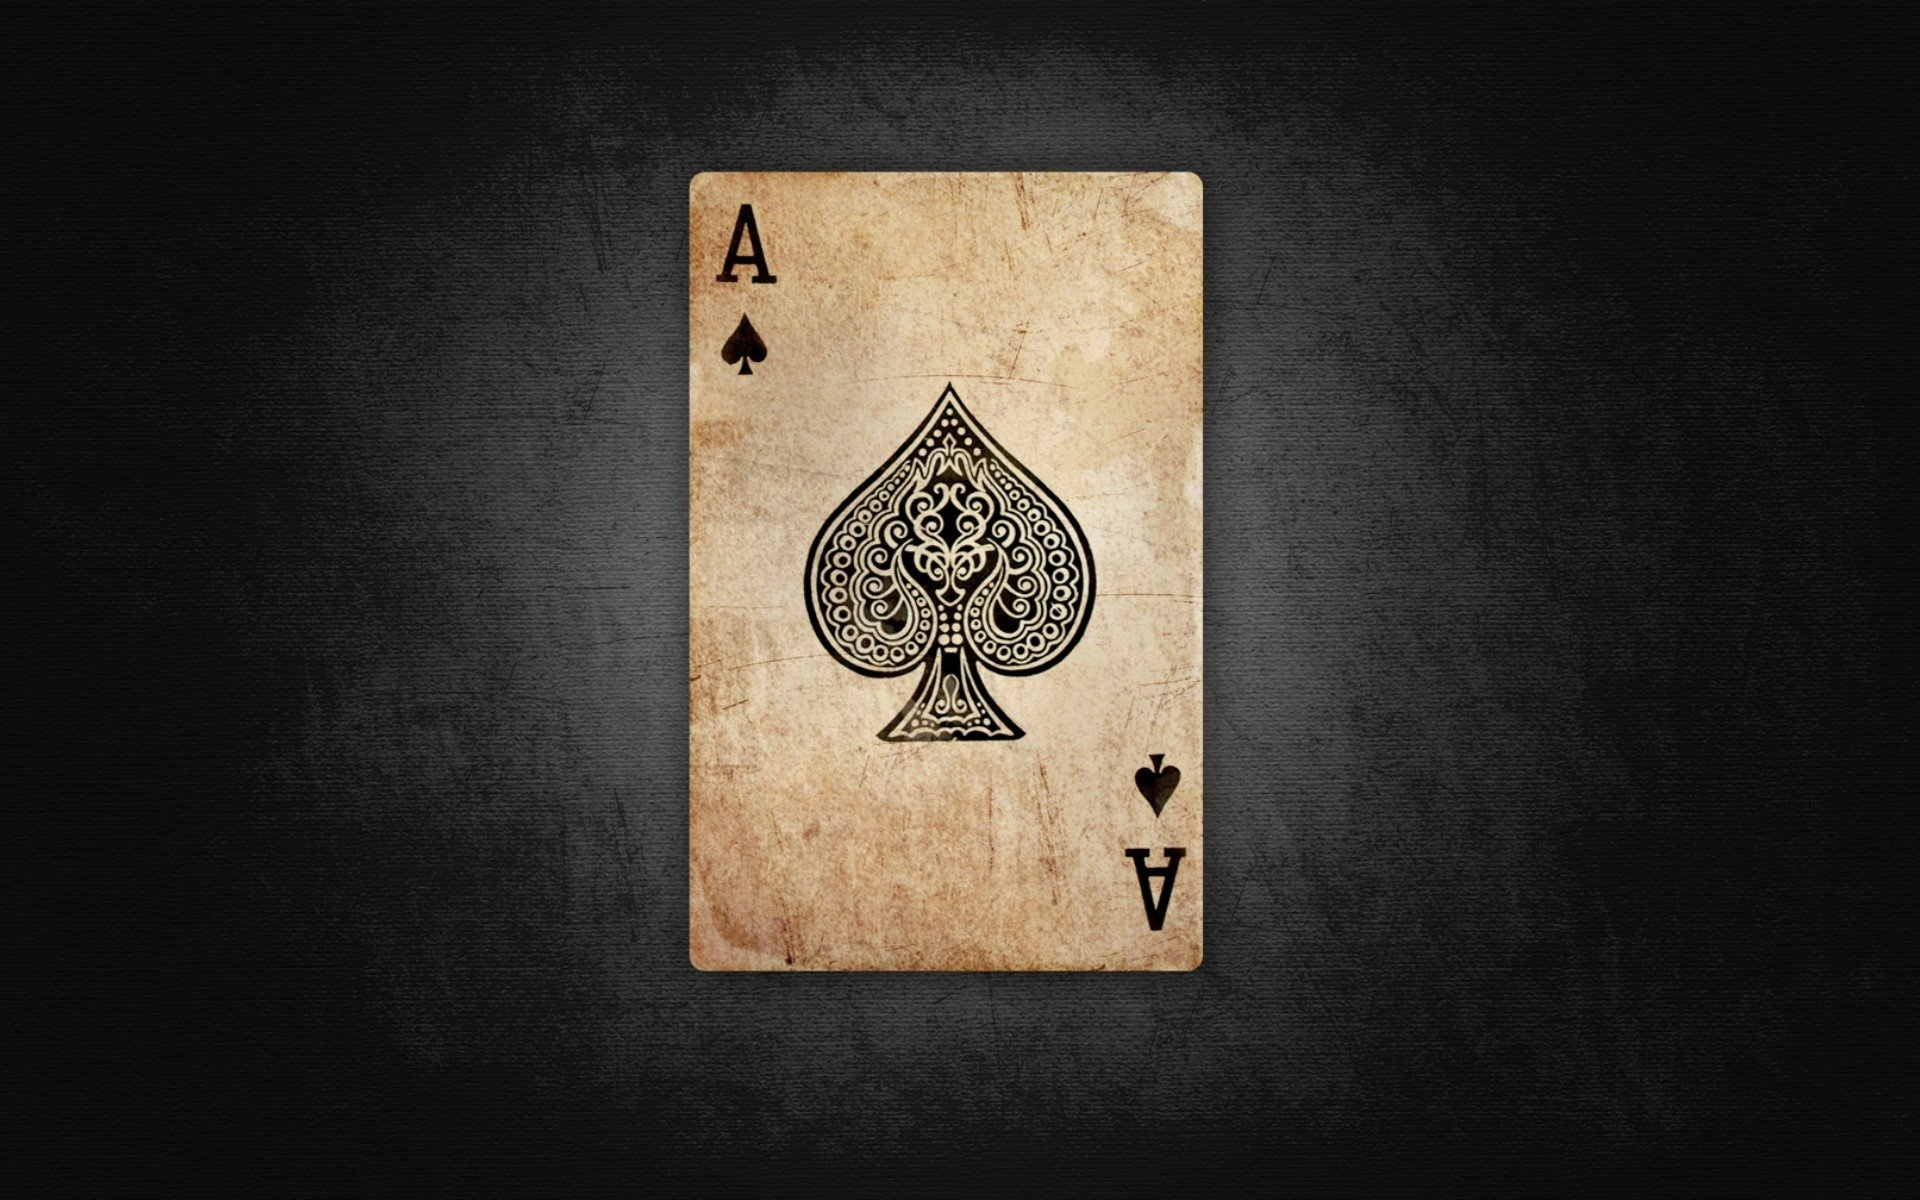 81 card hd wallpapers | background images - wallpaper abyss